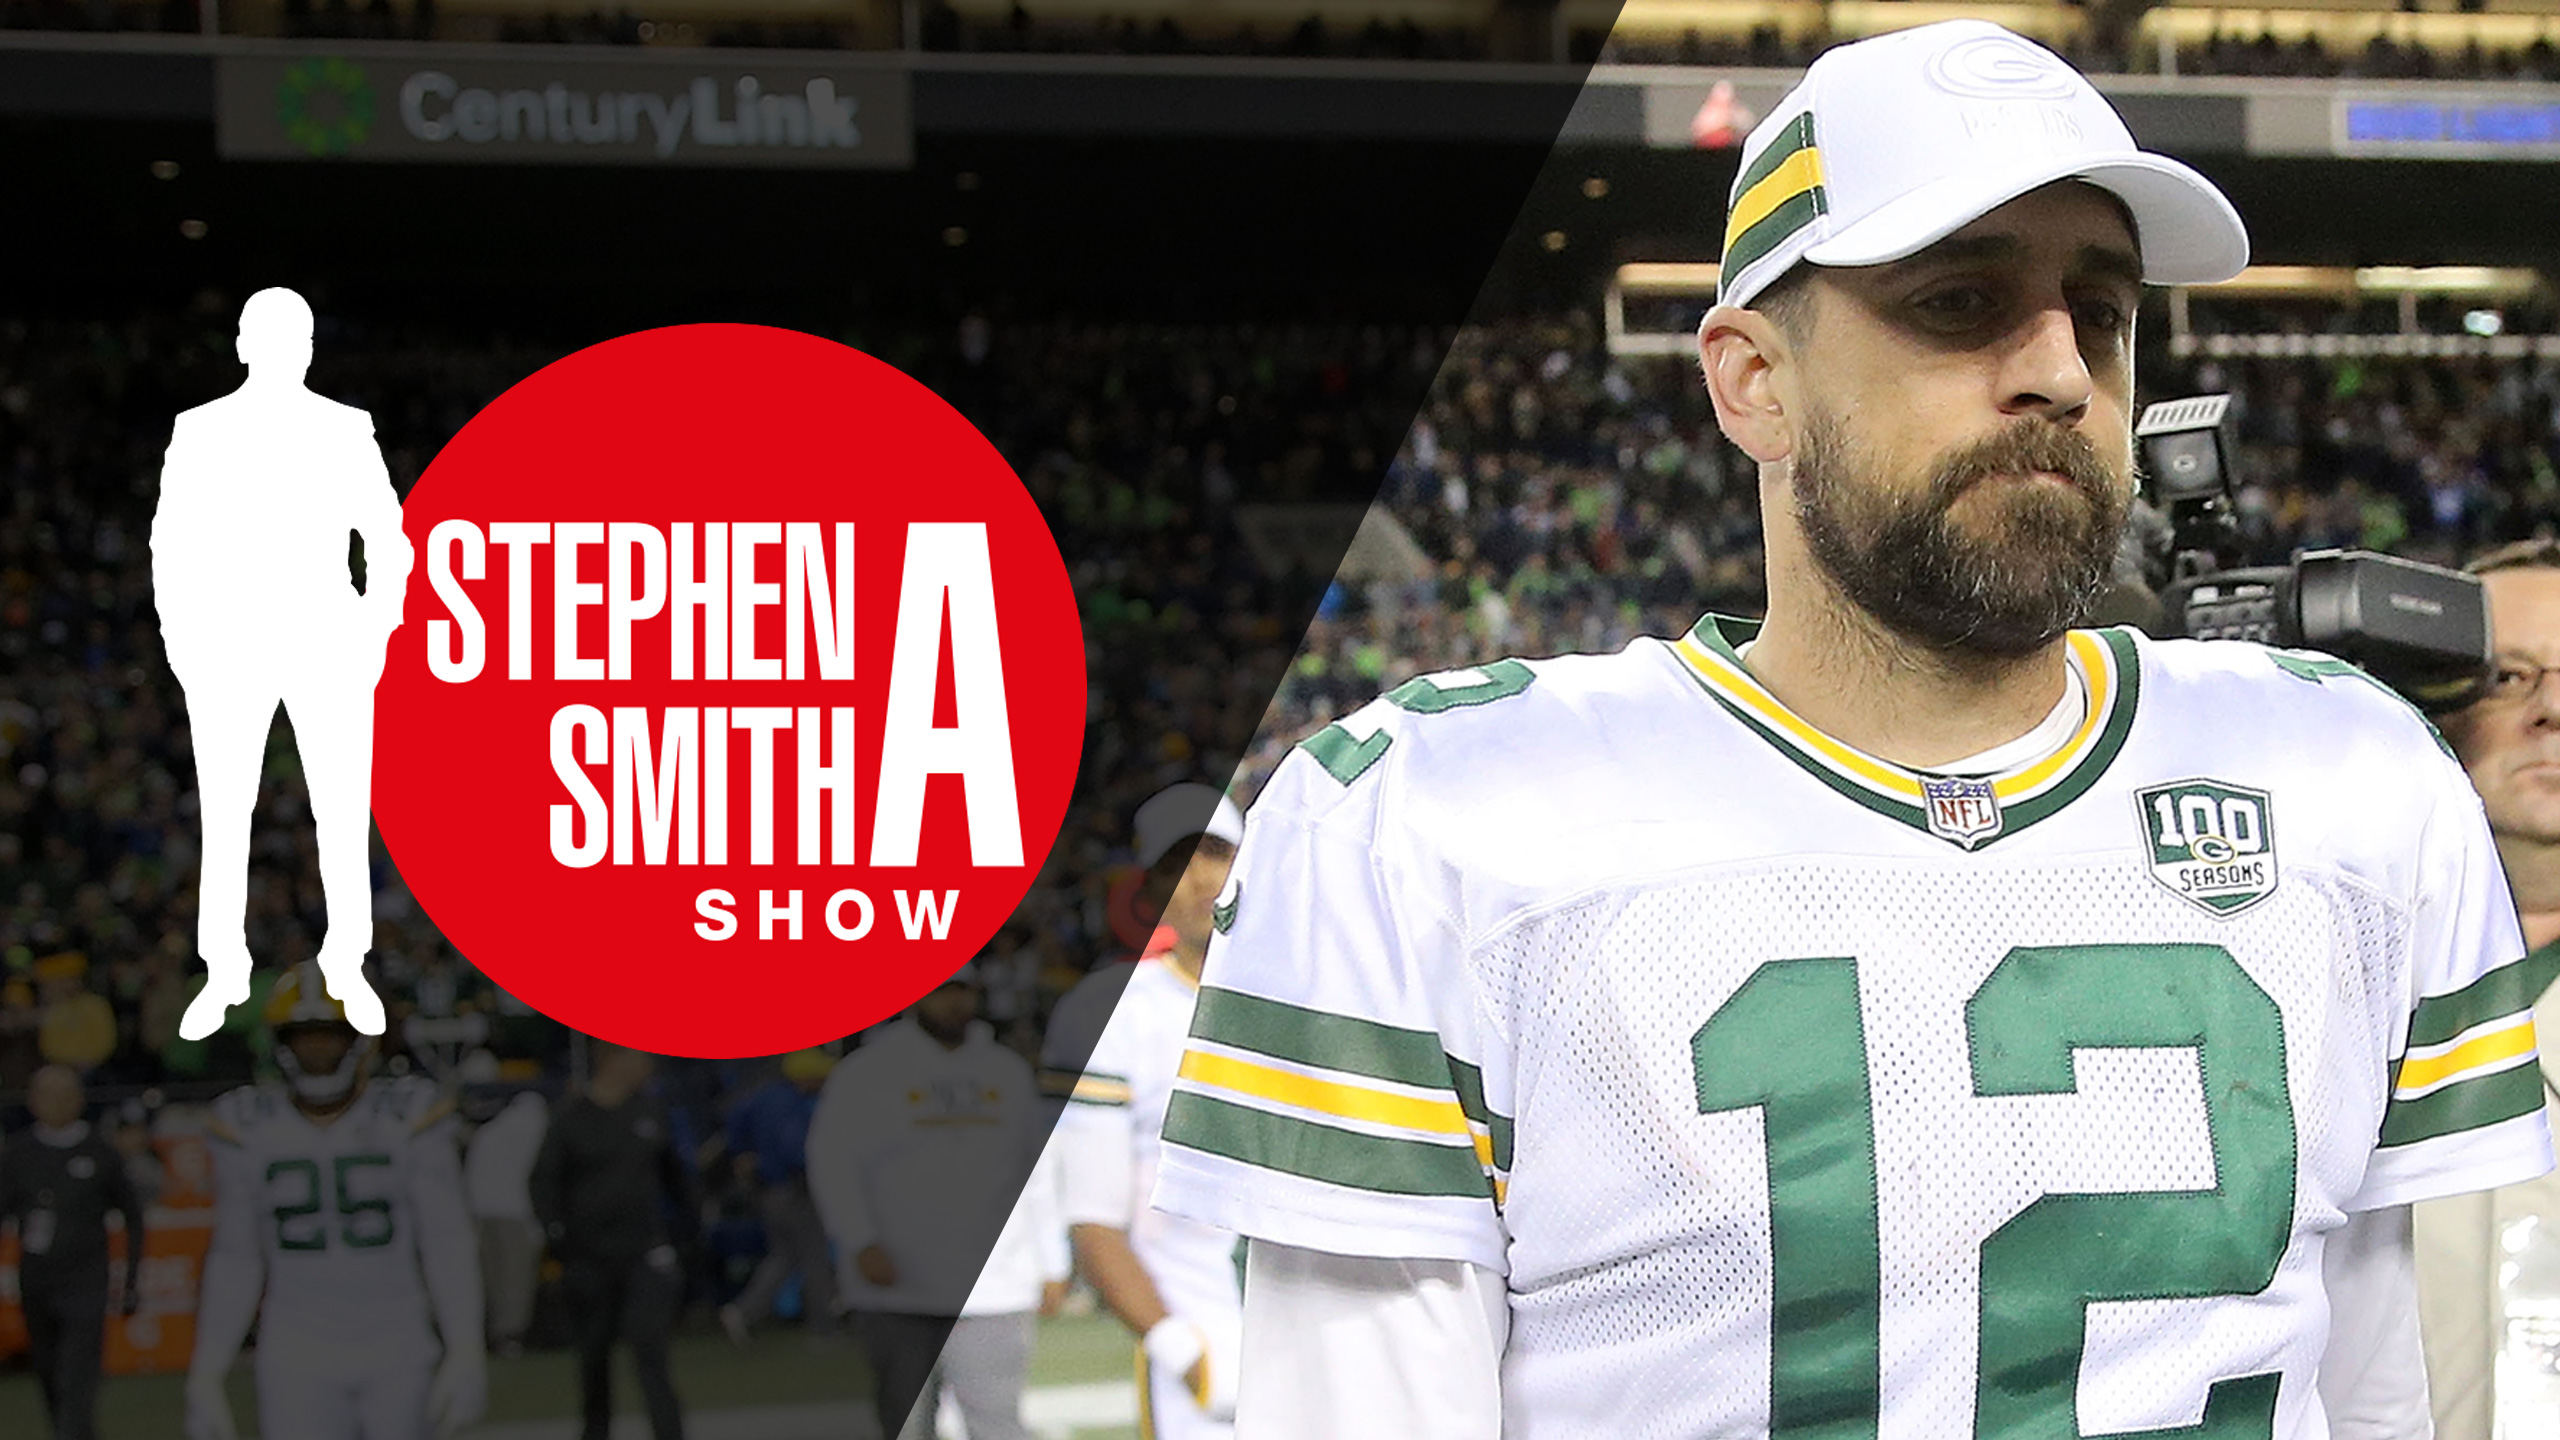 Fri, 11/16 - The Stephen A. Smith Show